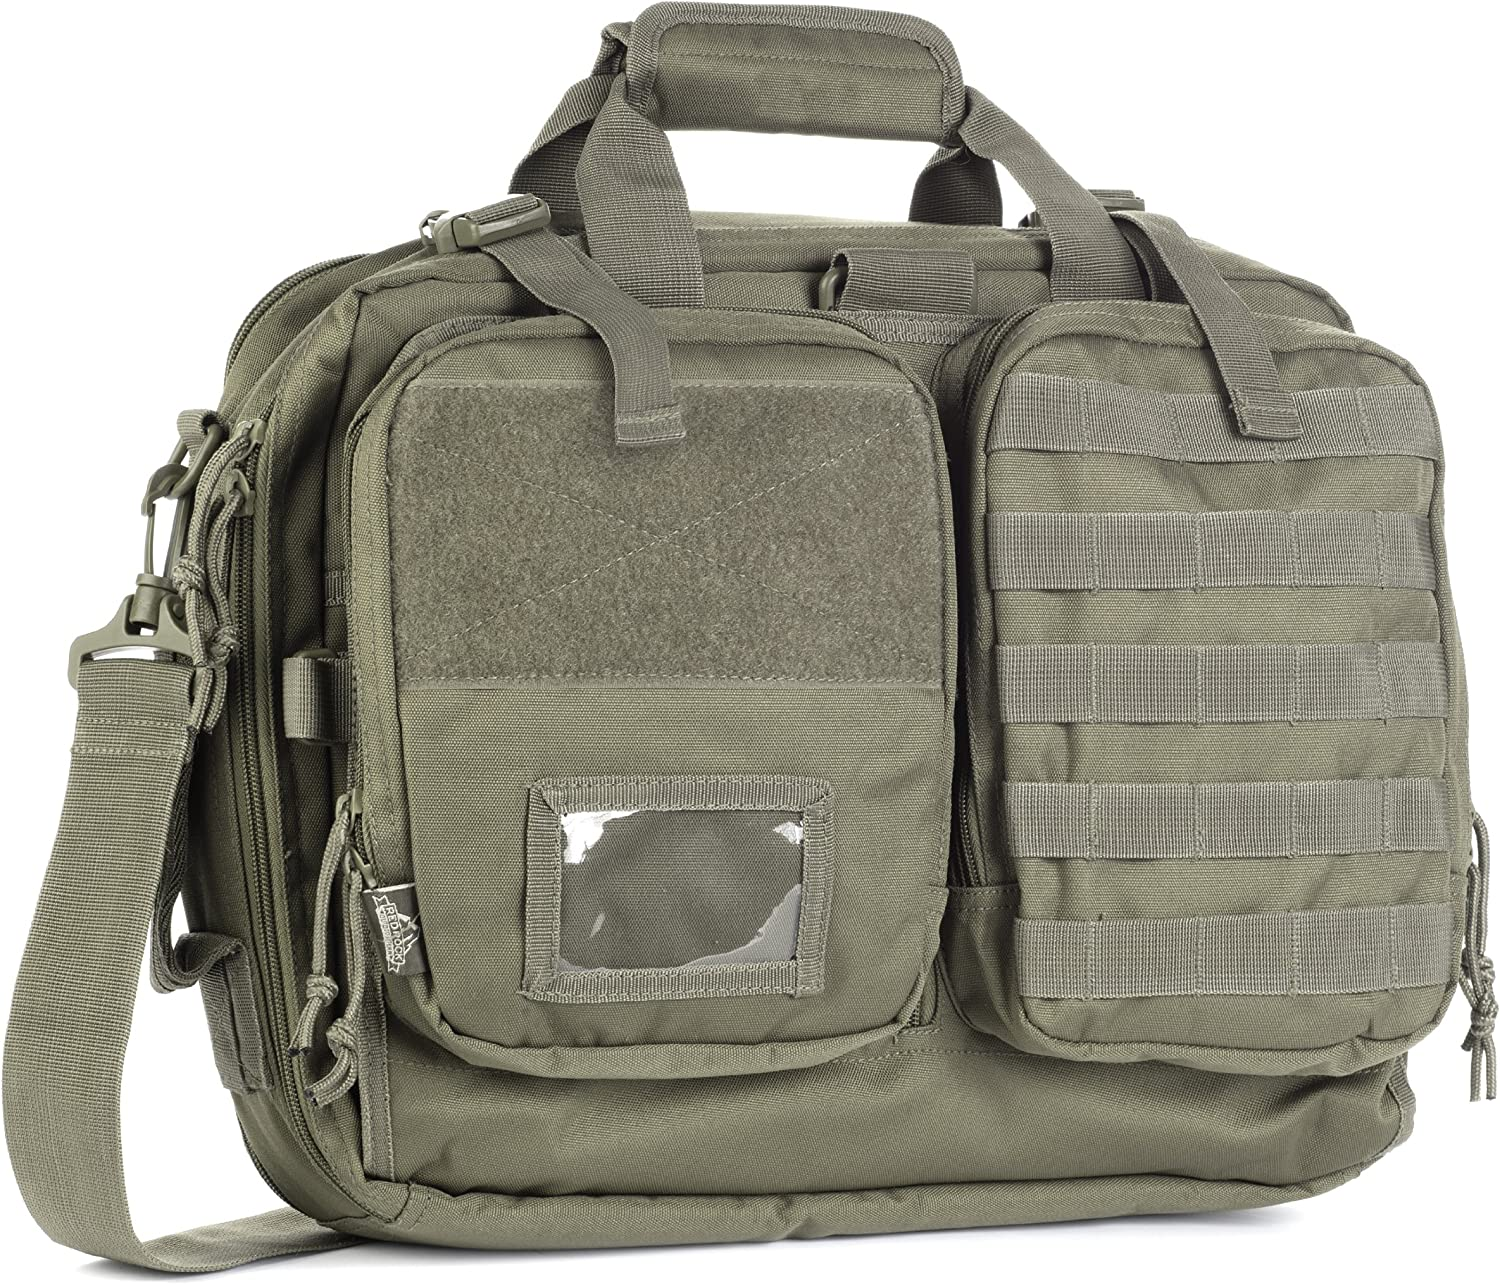 Red Rock Outdoor Gear Navigator Laptop Bag